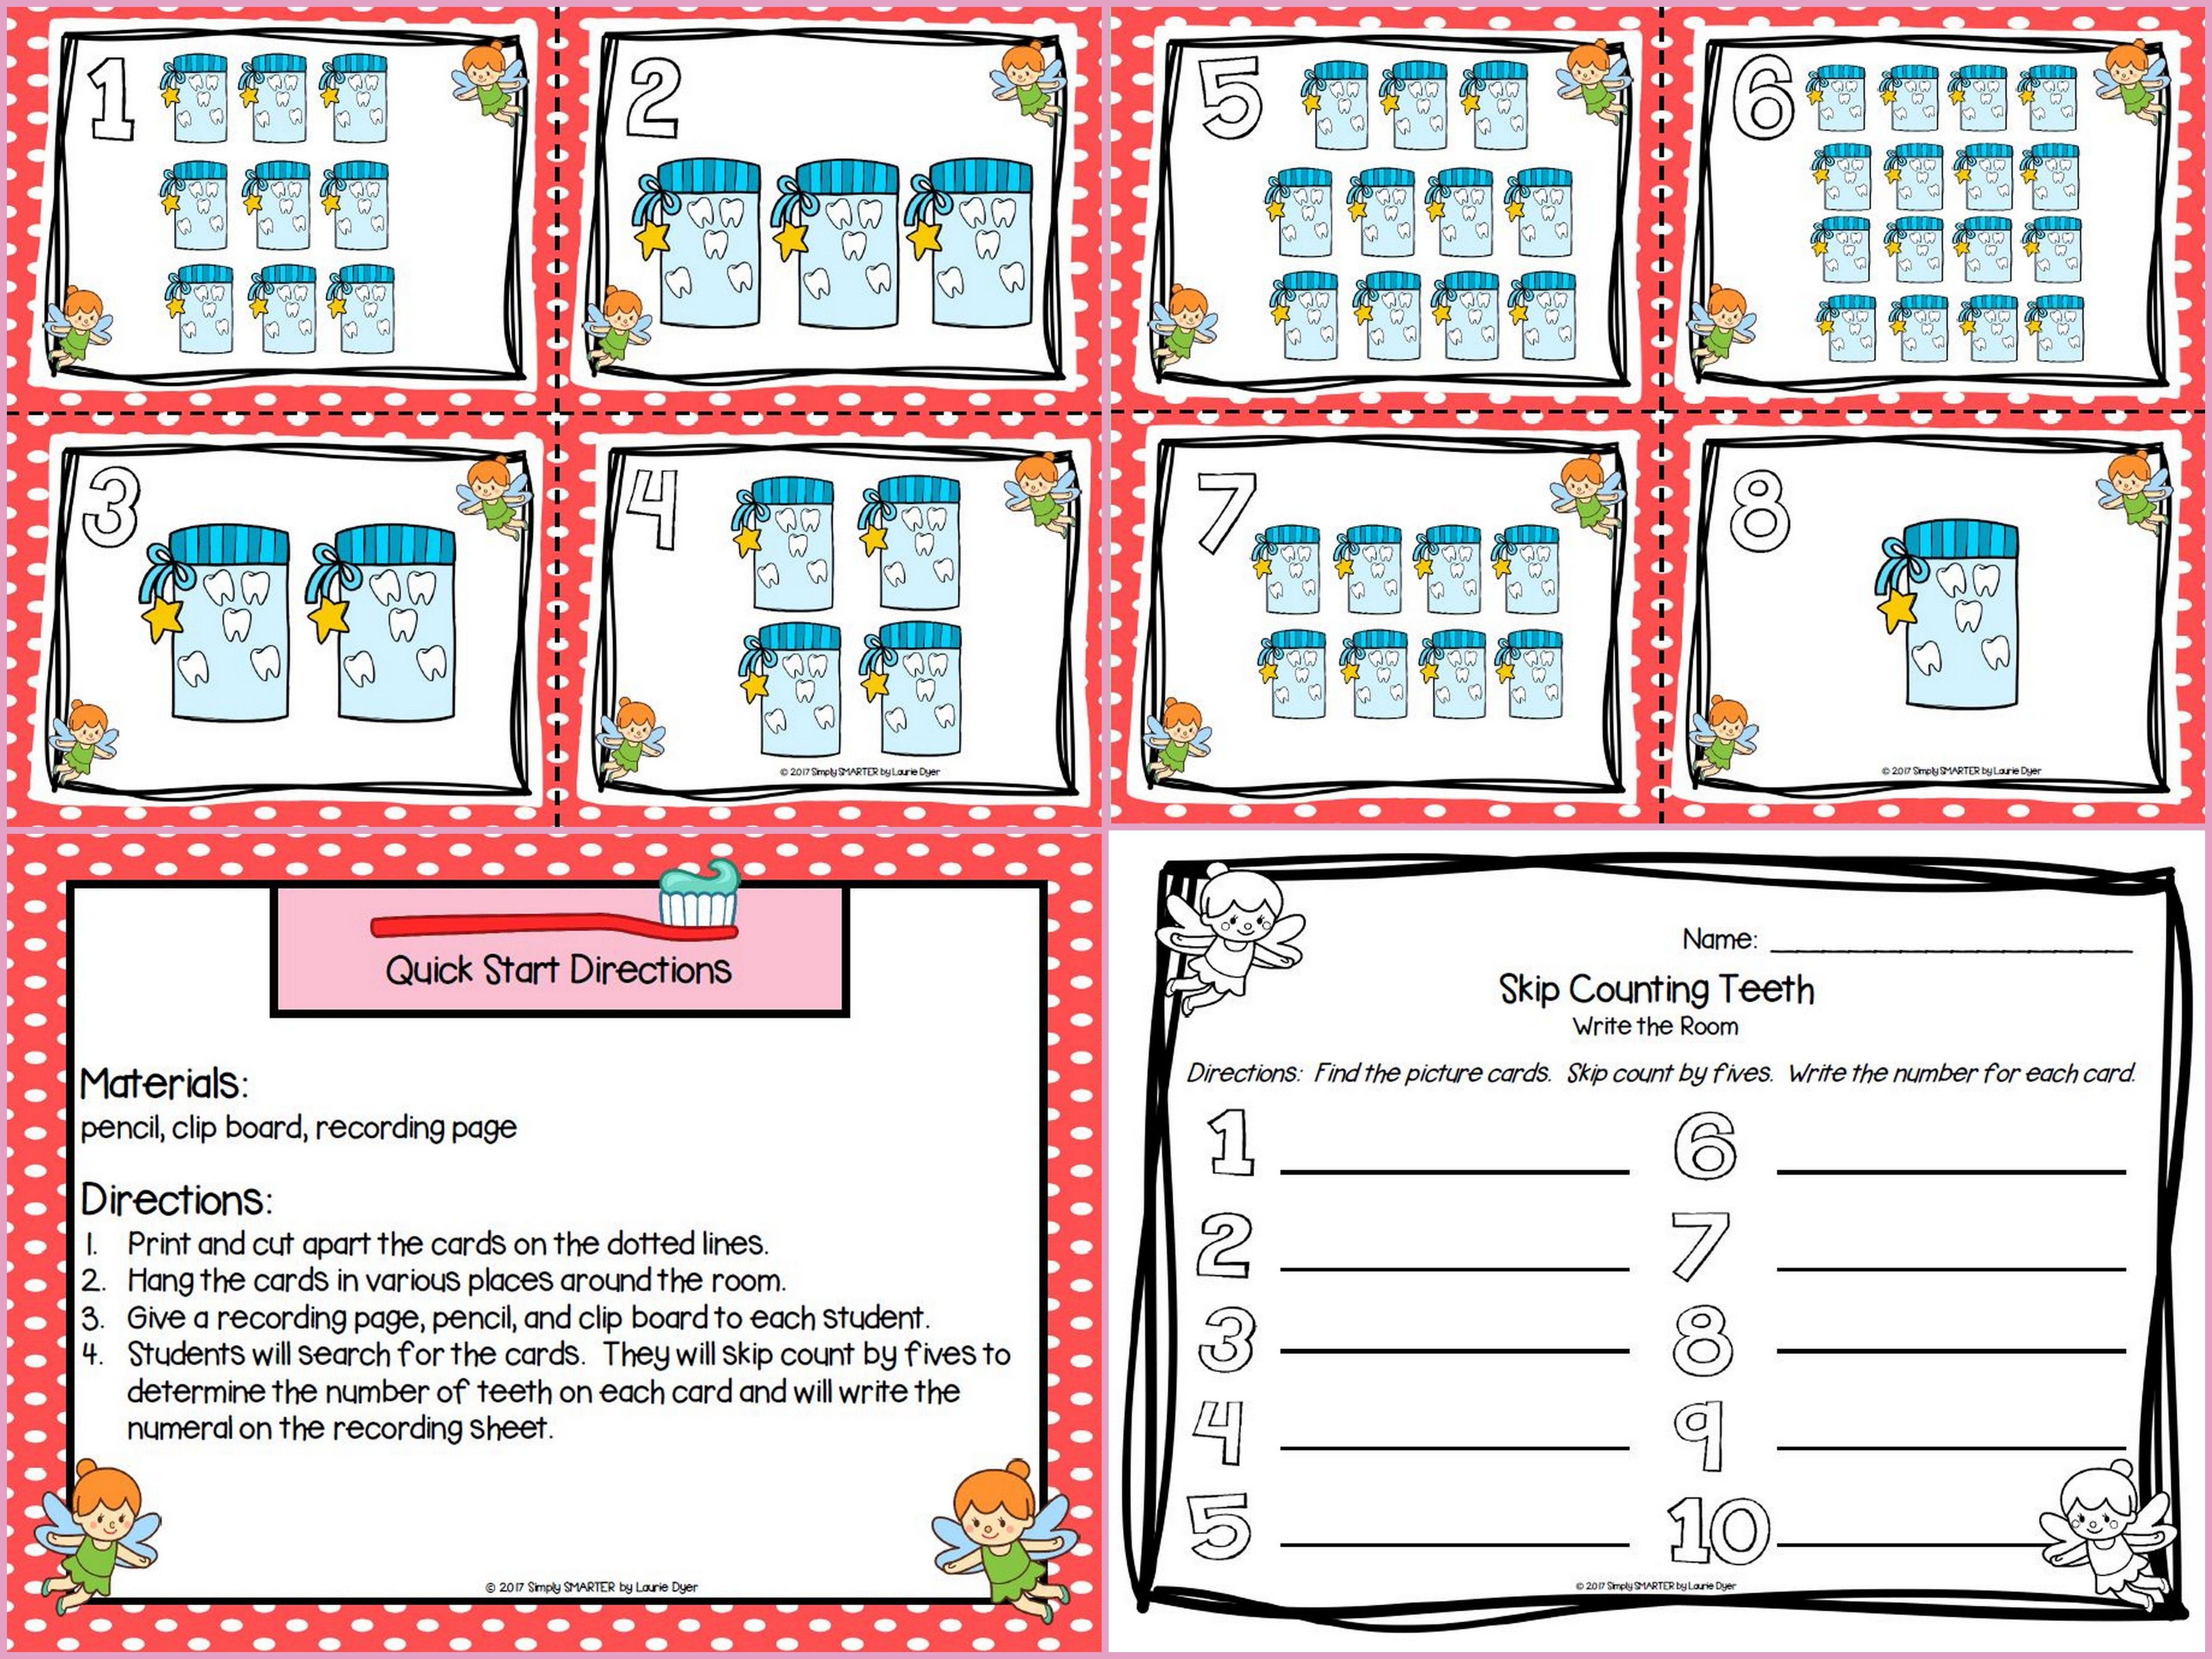 Are you looking for a LOW PREP math activity for preschool, kindergarten, or first grade? Then download this product and go!  Enjoy this number resource which is comprised of a color version of a DENTAL HEALTH themed SKIP COUNTING write the room activity.  Children will skip count by fives and record the number while hunting for the ten cards around the room.  ALL YOU NEED TO DO IS PRINT AND PLACE THE CARDS AROUND THE ROOM AND PROVIDE A PENCIL, CLIP BOARD, AND RECORDING PAGE.